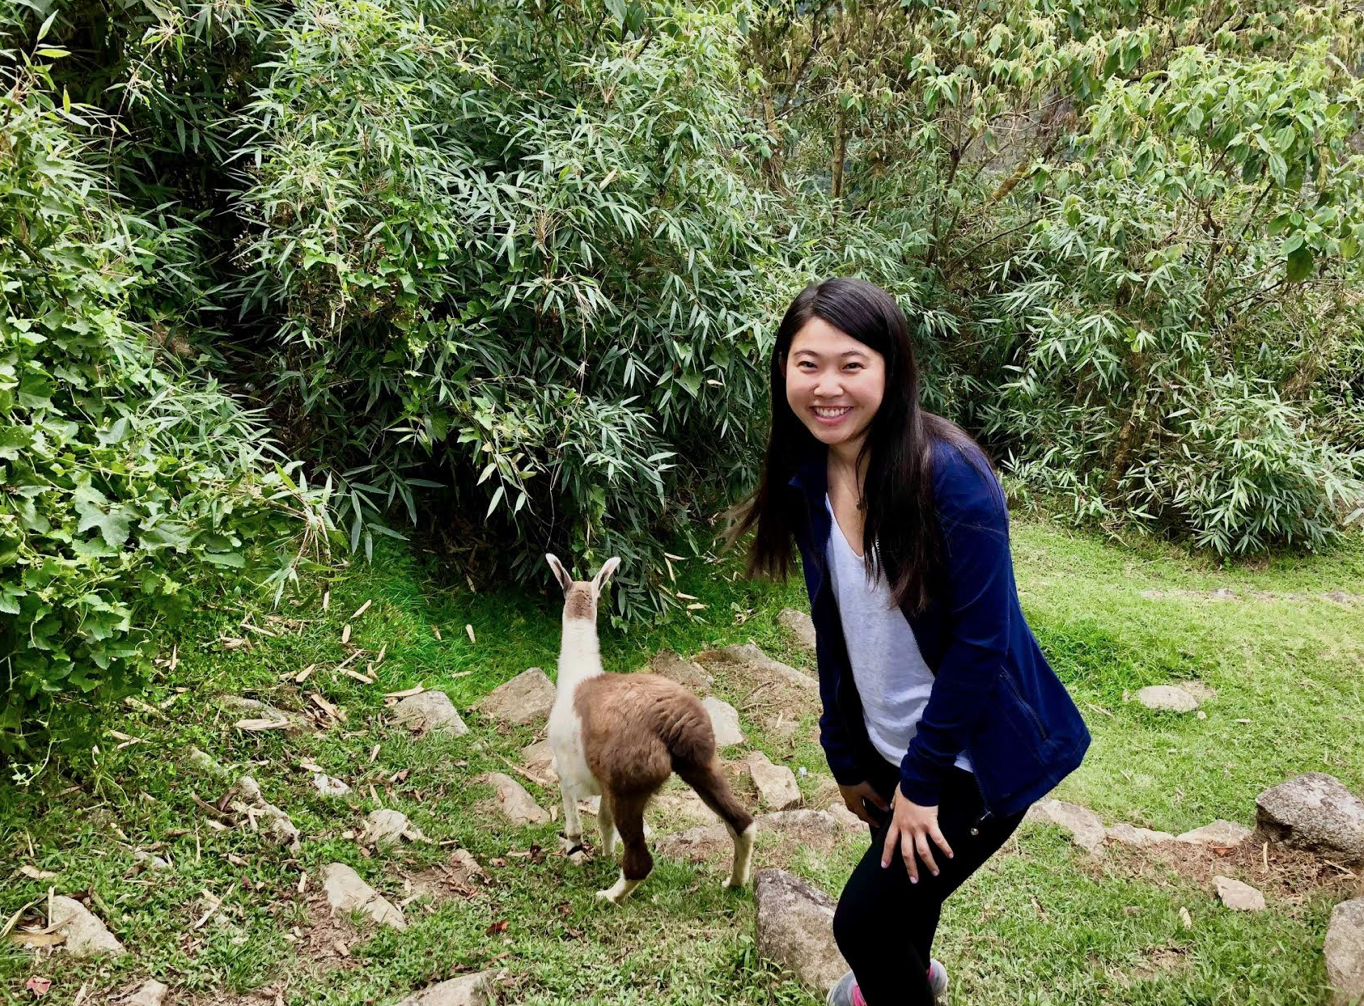 Captured:me at Machu Picchu with a baby alpaca. Not captured:my friend taking the photo laughing at the alpaca's butt, my giddiness of being so close to the alpaca, and eagerness to take the photo. These memories are a non-tangible that I hold dear.